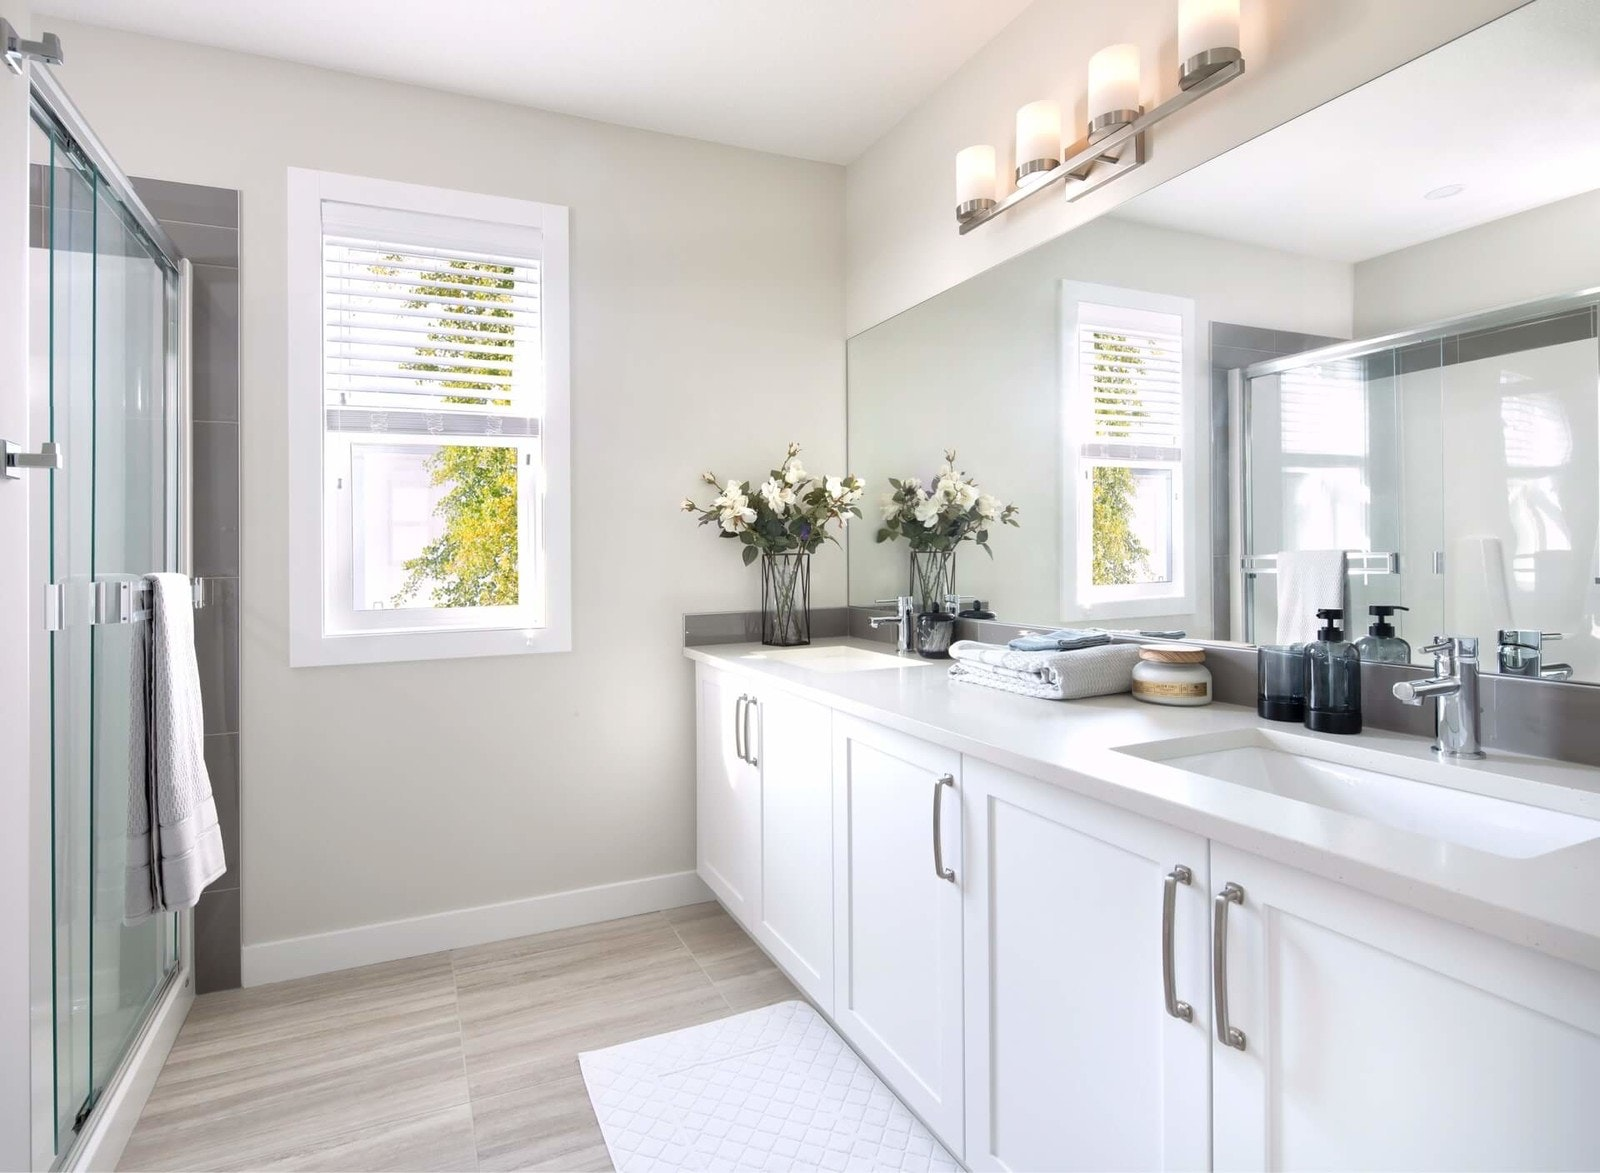 Master bathroom with flowers